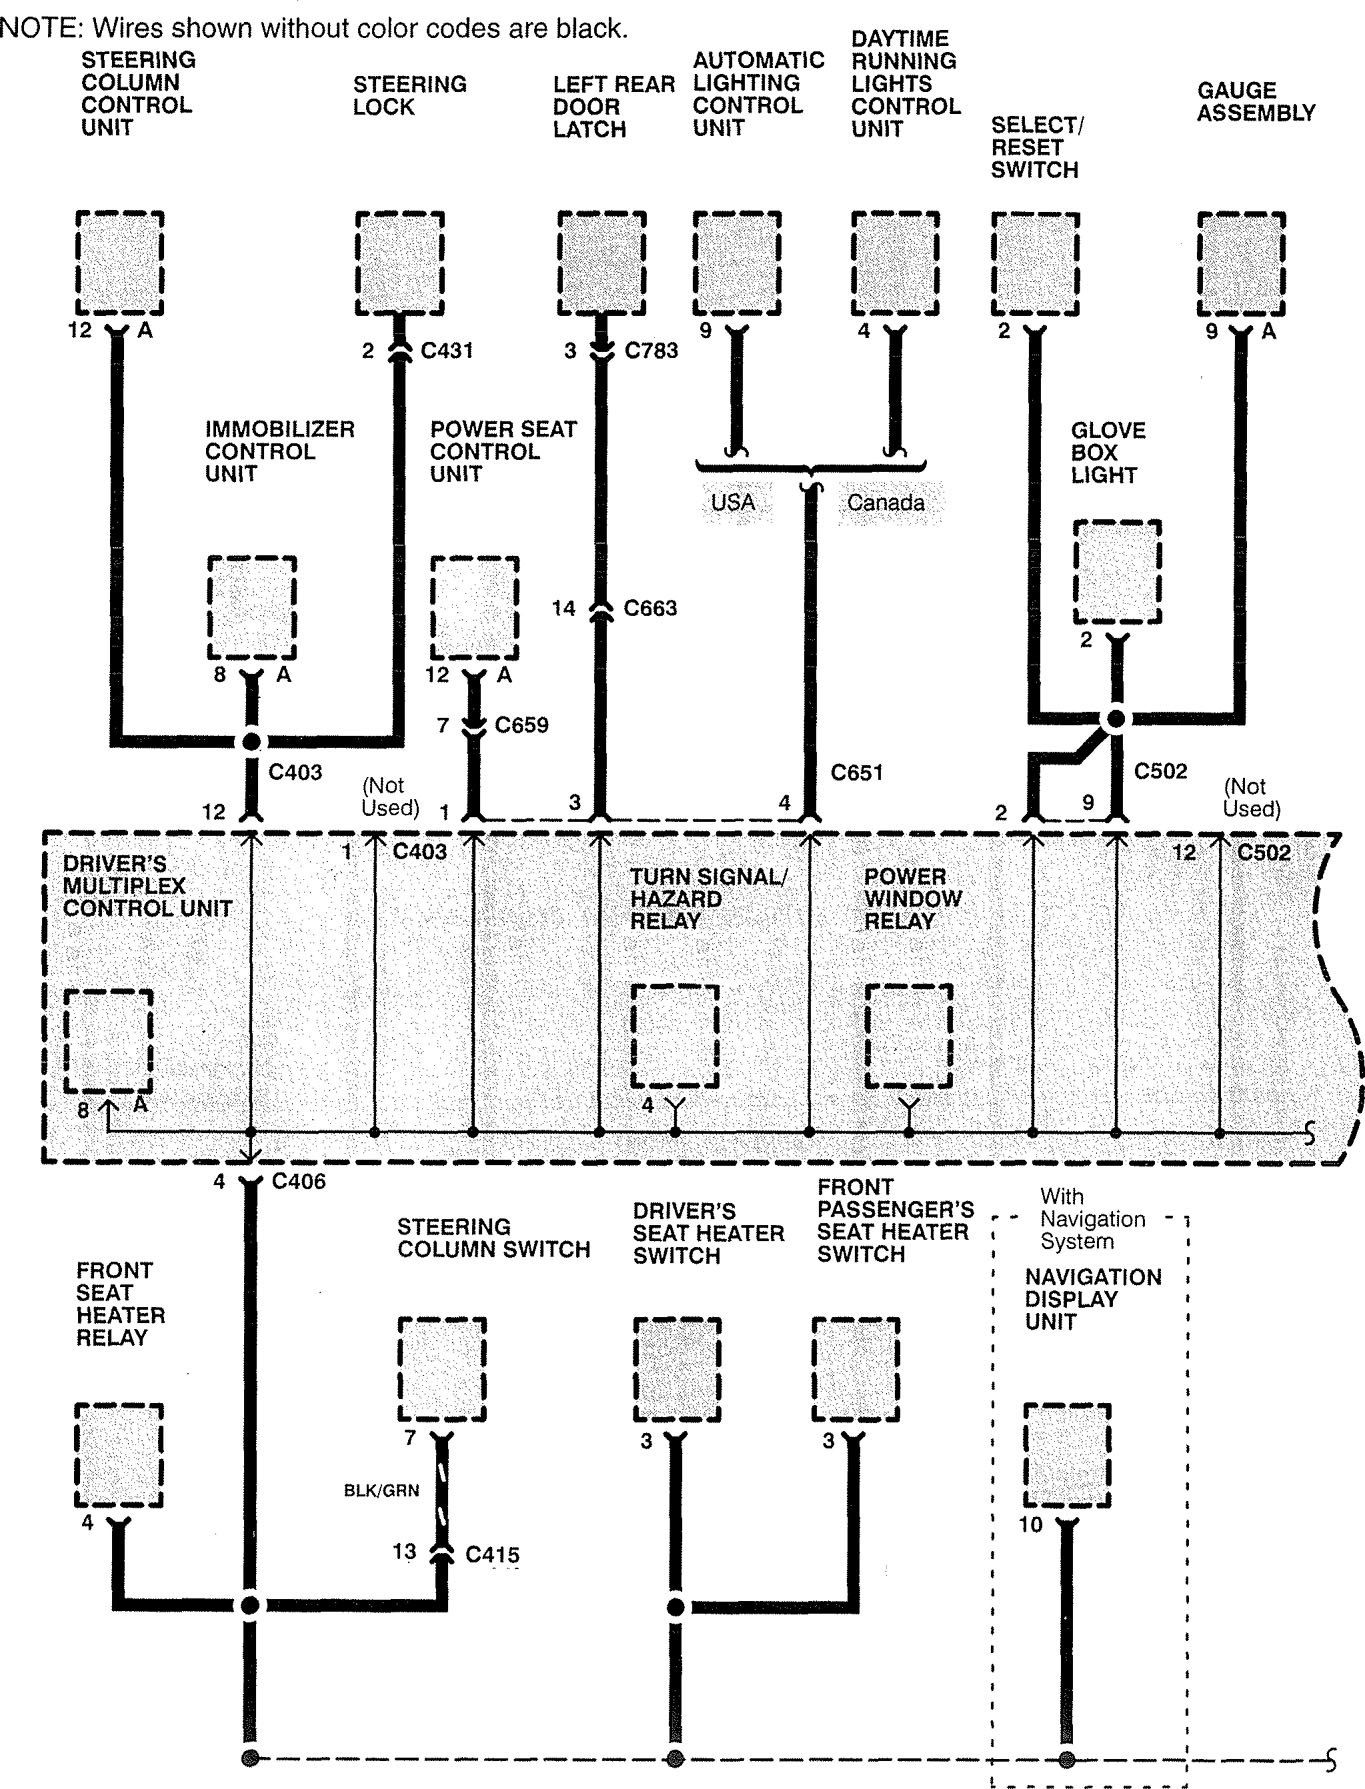 acura rl  1999  - wiring diagrams